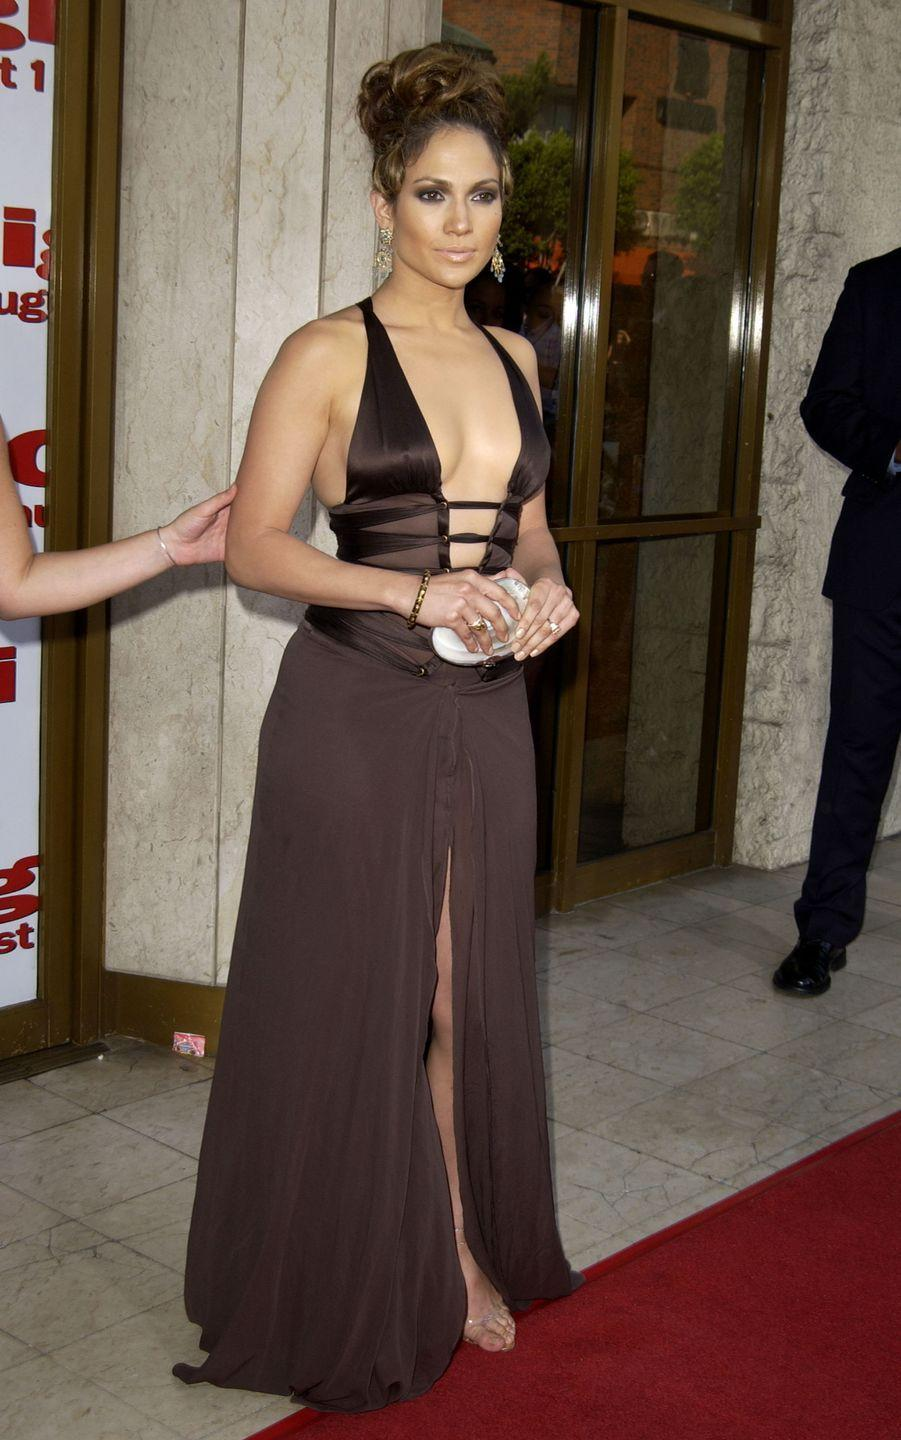 <p>Jennifer attends the premiere for her film <em>Gigli </em>(a major #TBT, right?) in a plunging brown dress with cutouts and a thigh-high slit.</p>